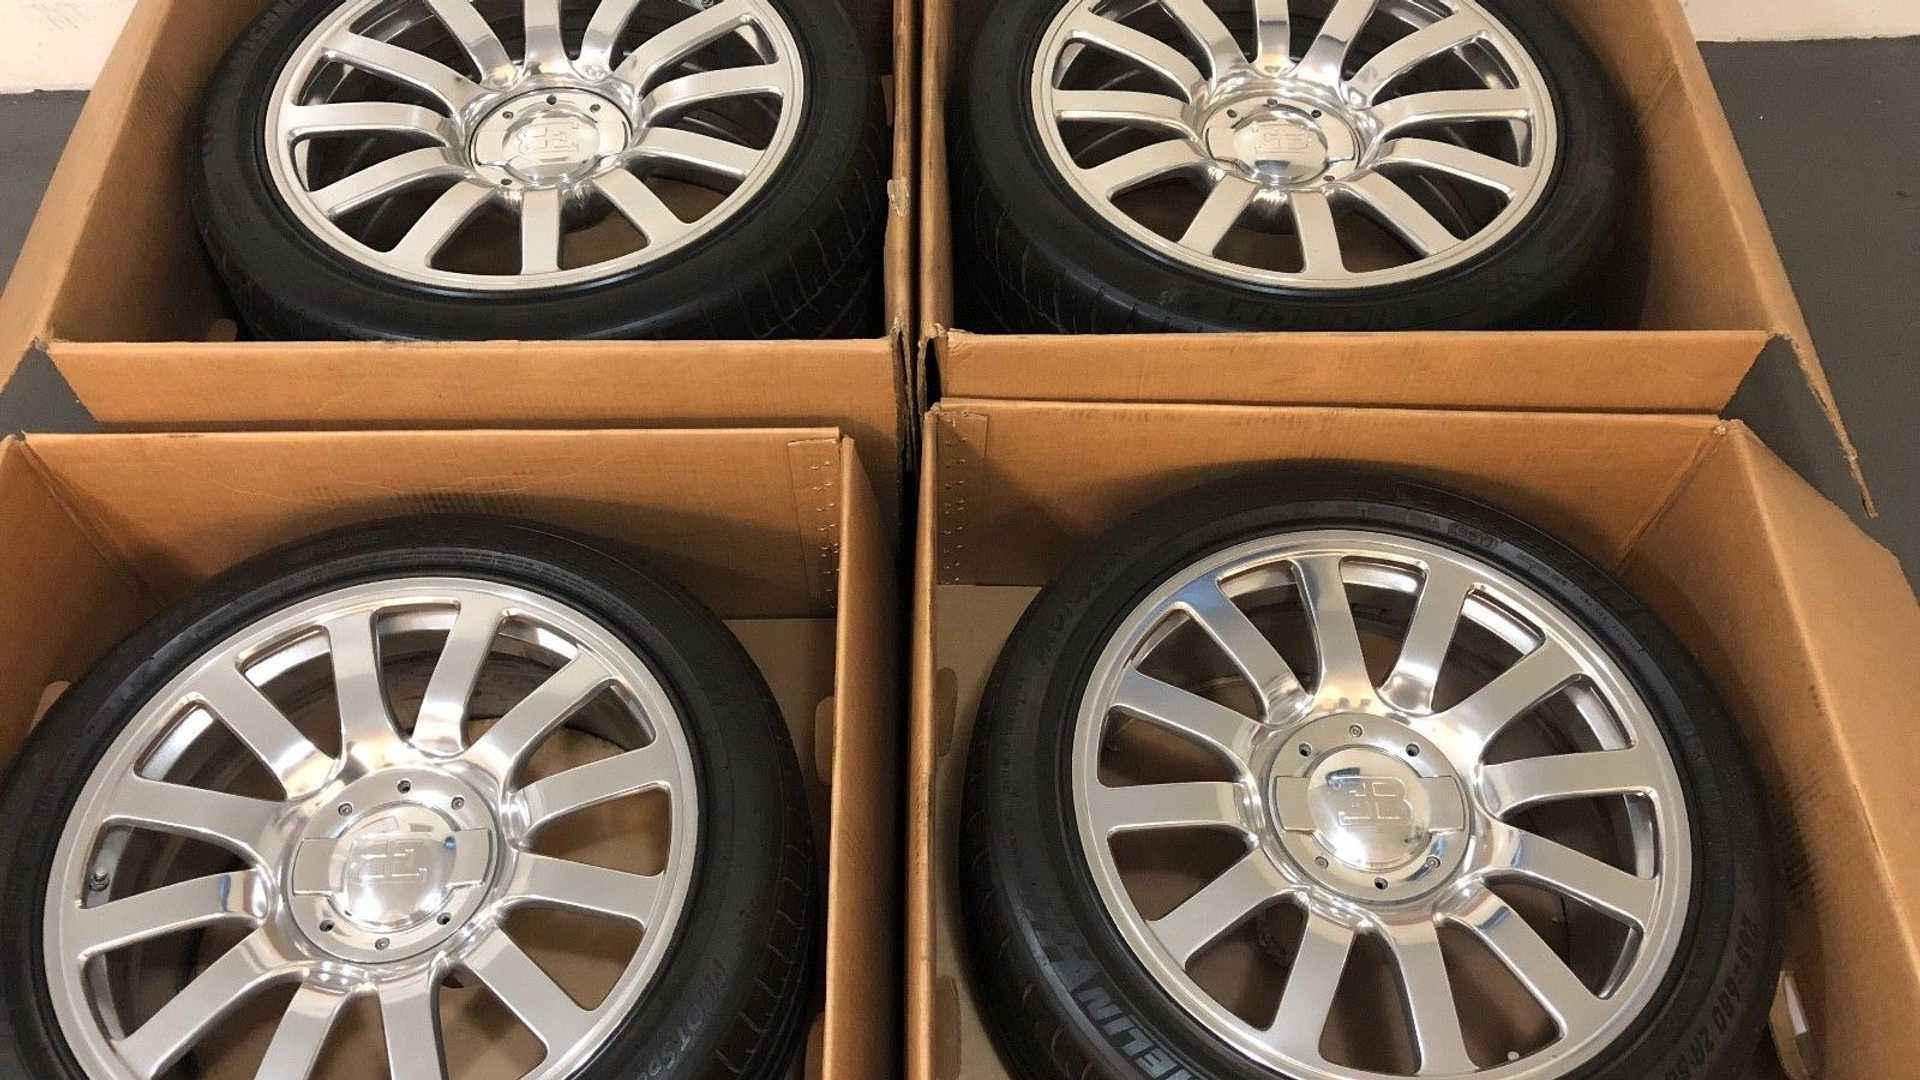 bugatti-veyron-tires-wheels-for-sale